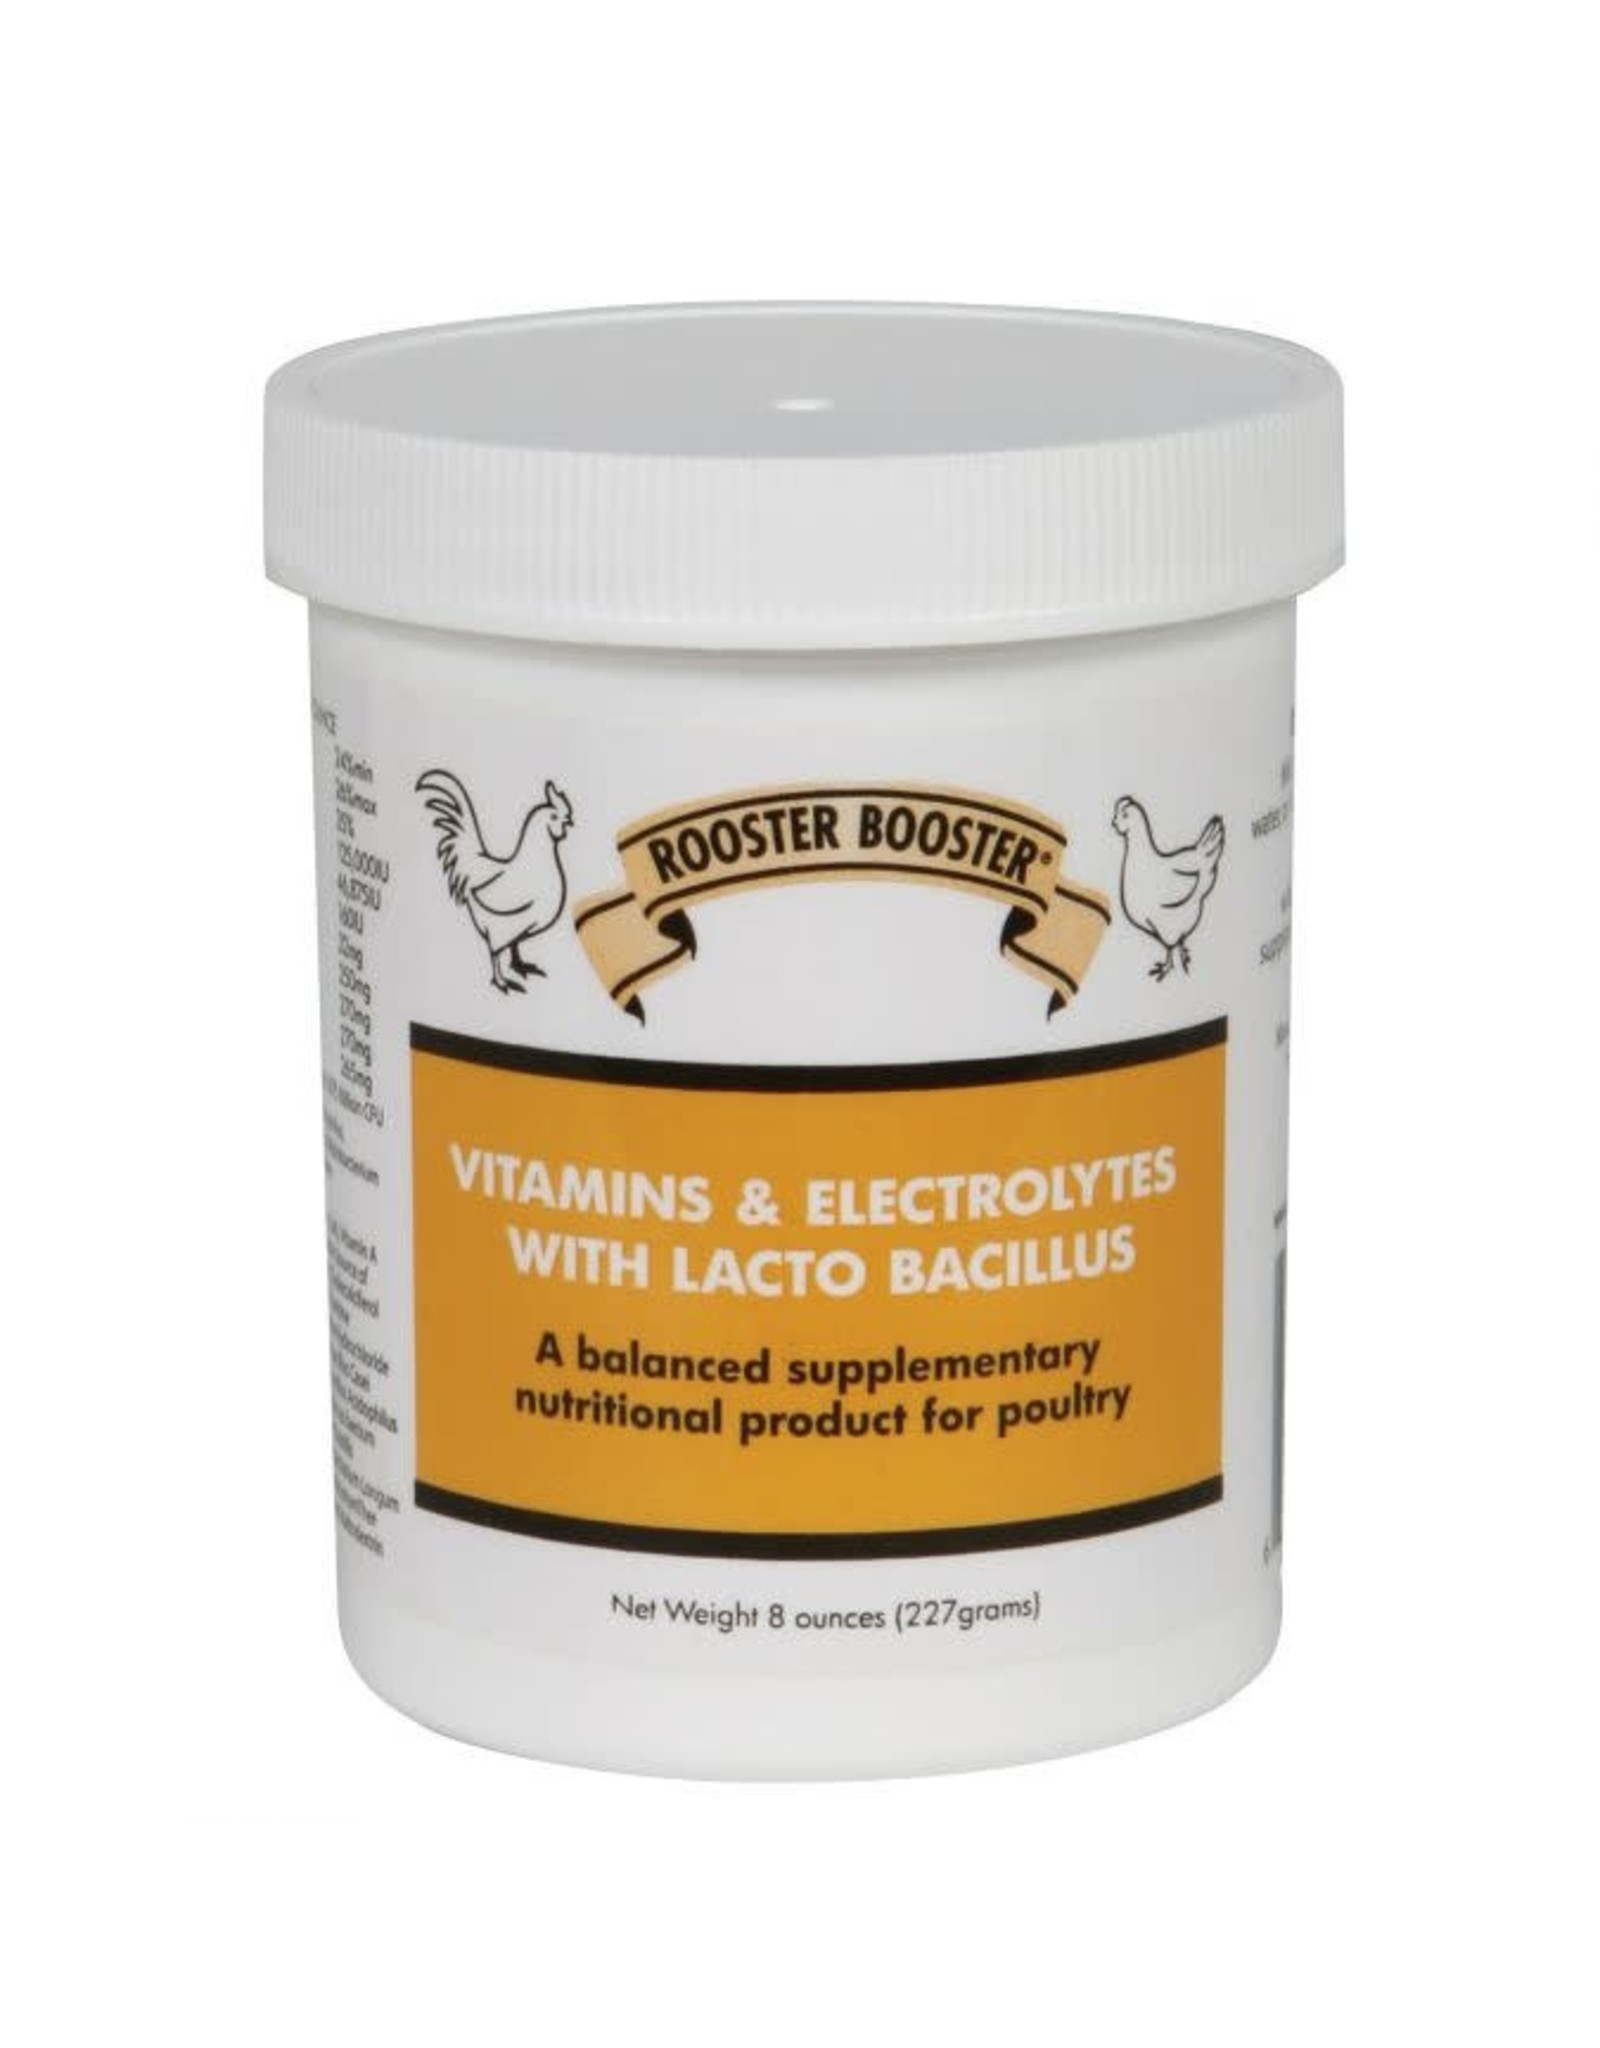 Rooster Booster Vitamins & Electrolytes and Probiotics 8oz